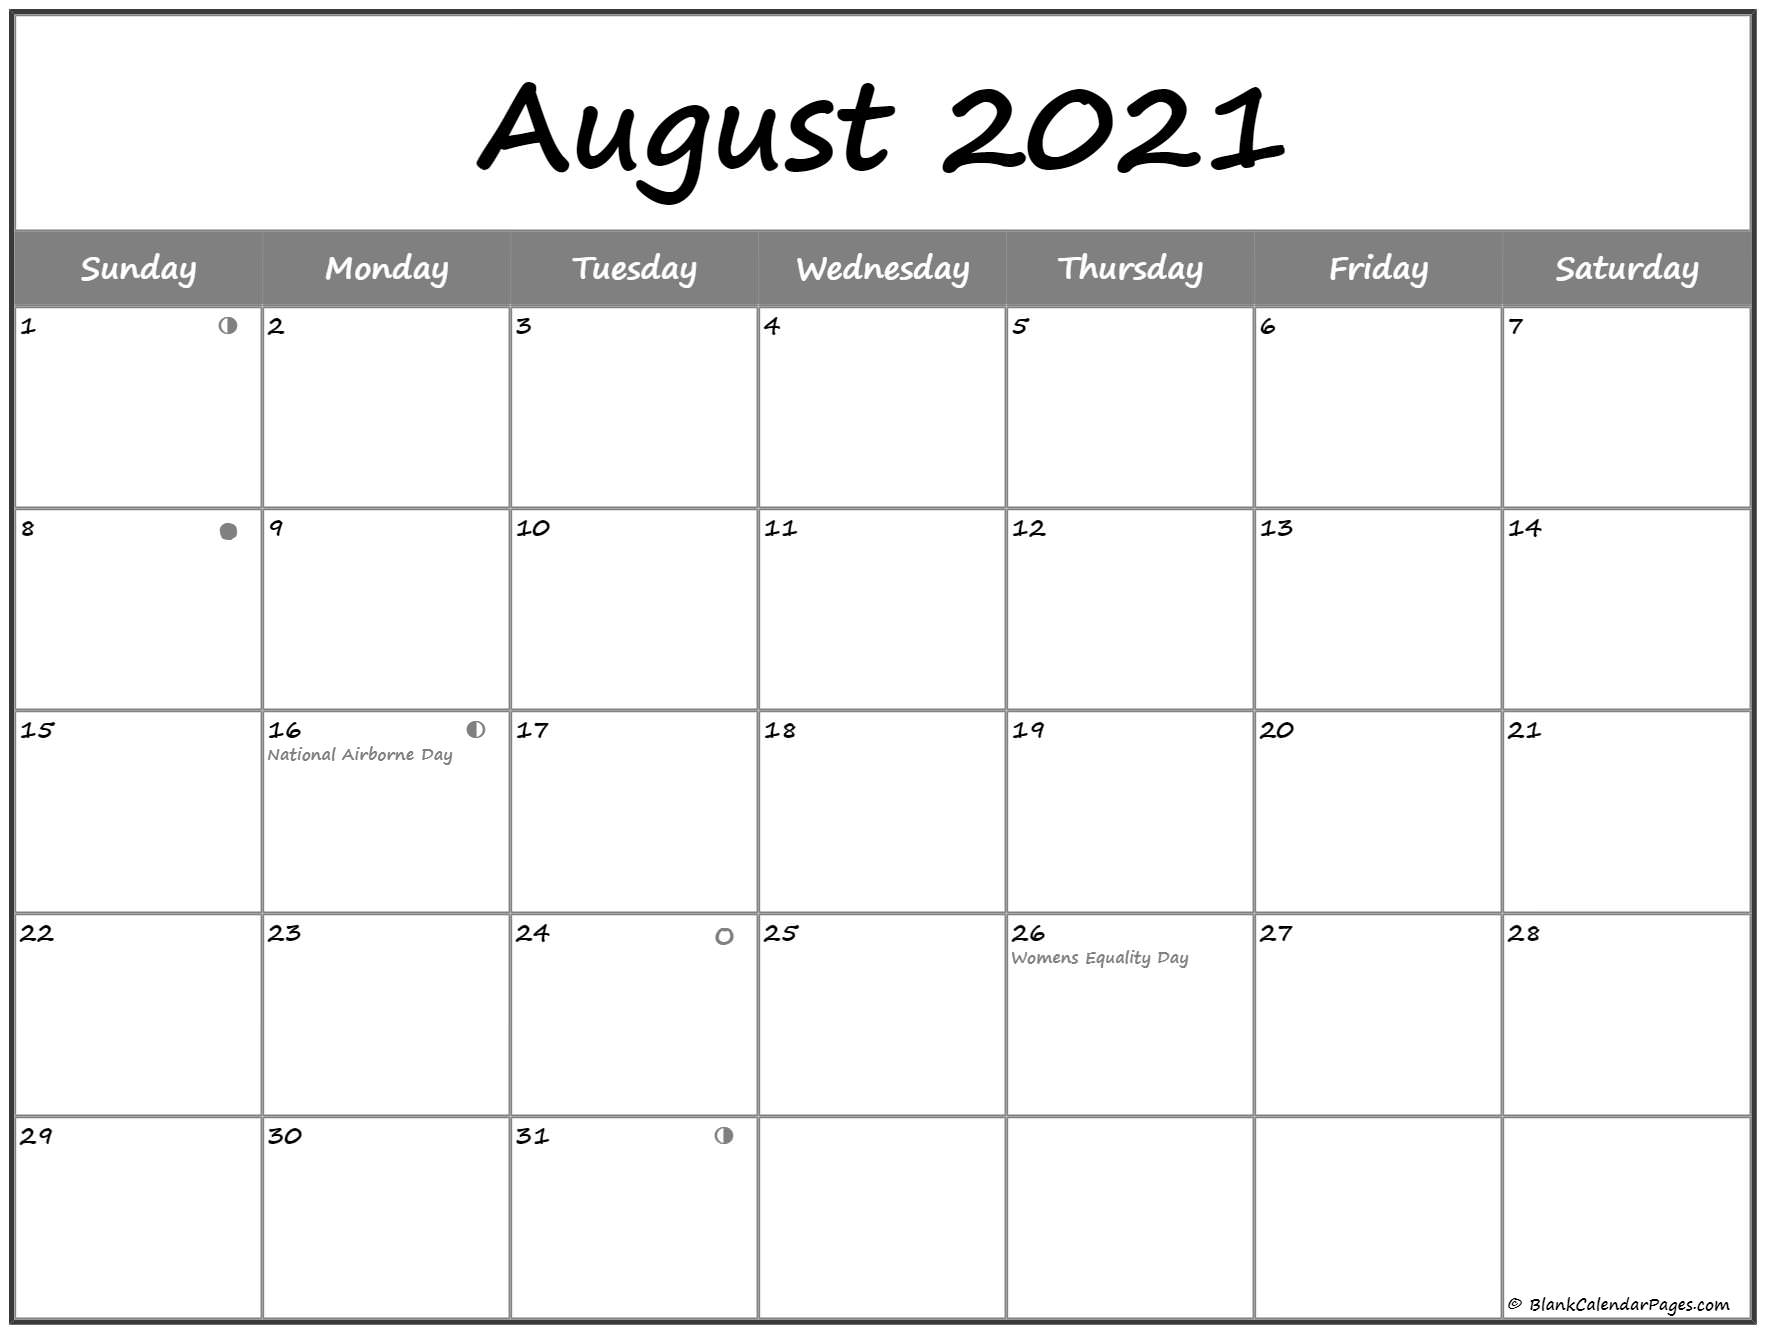 August 2021 Lunar Calendar | Moon Phase Calendar for Free Calendar Template August 2021